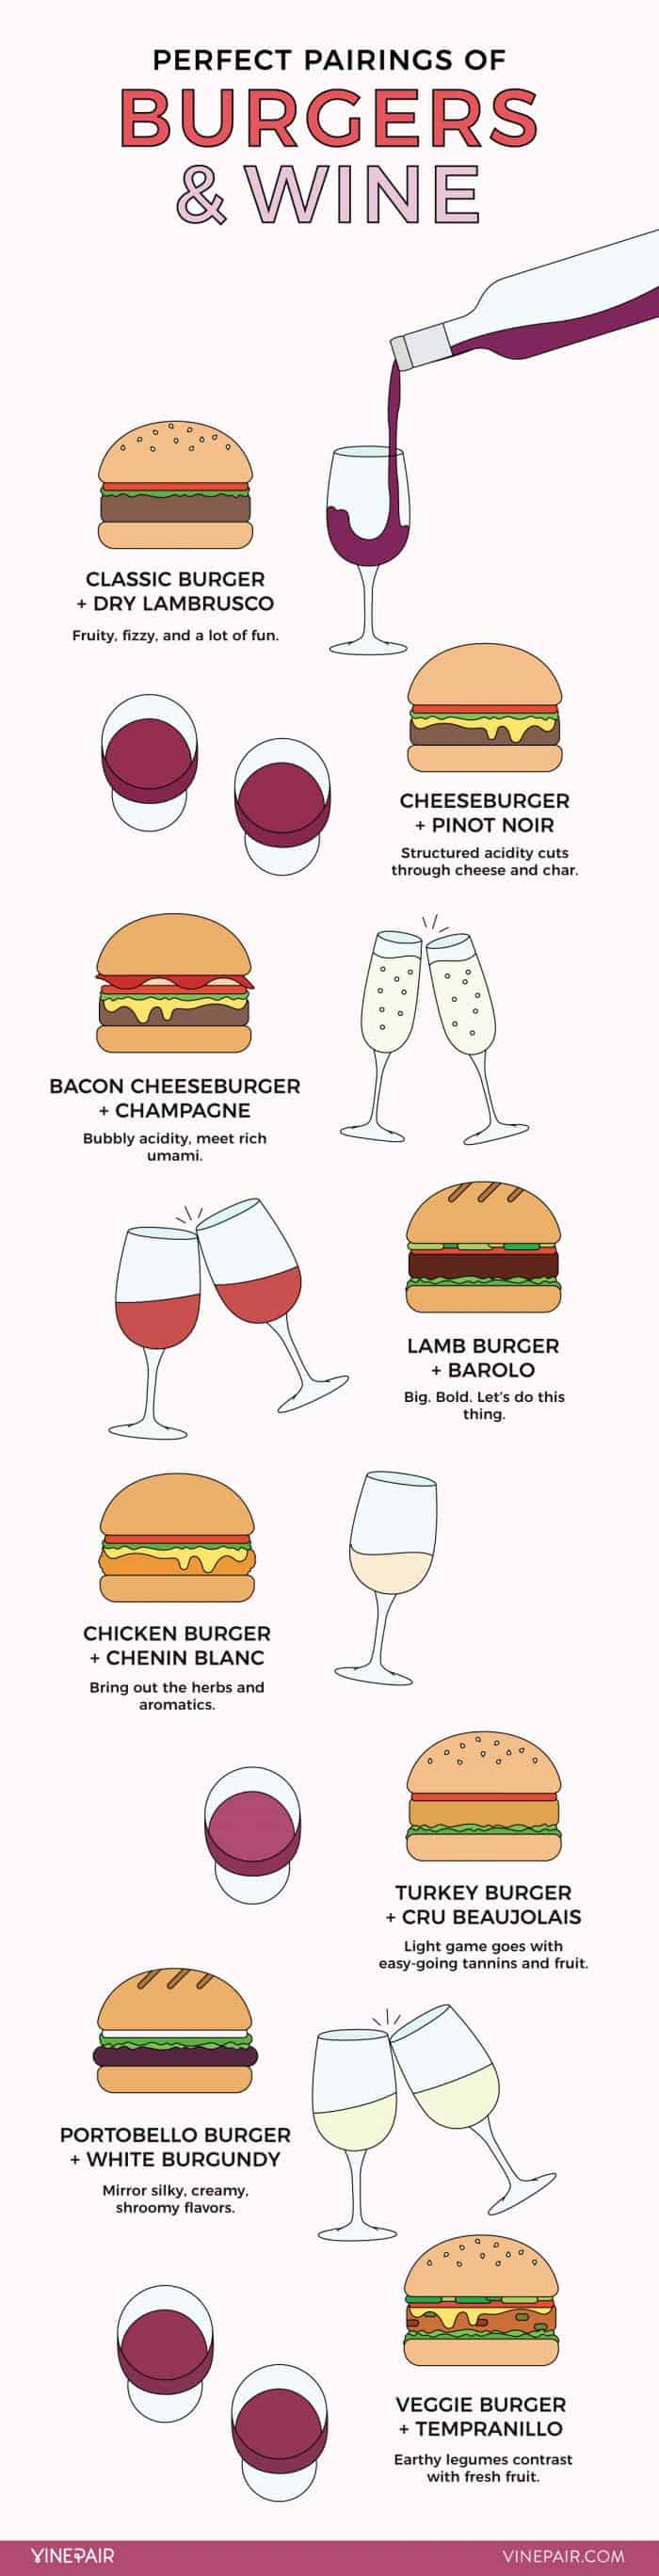 Description of burgers with wine for pairing